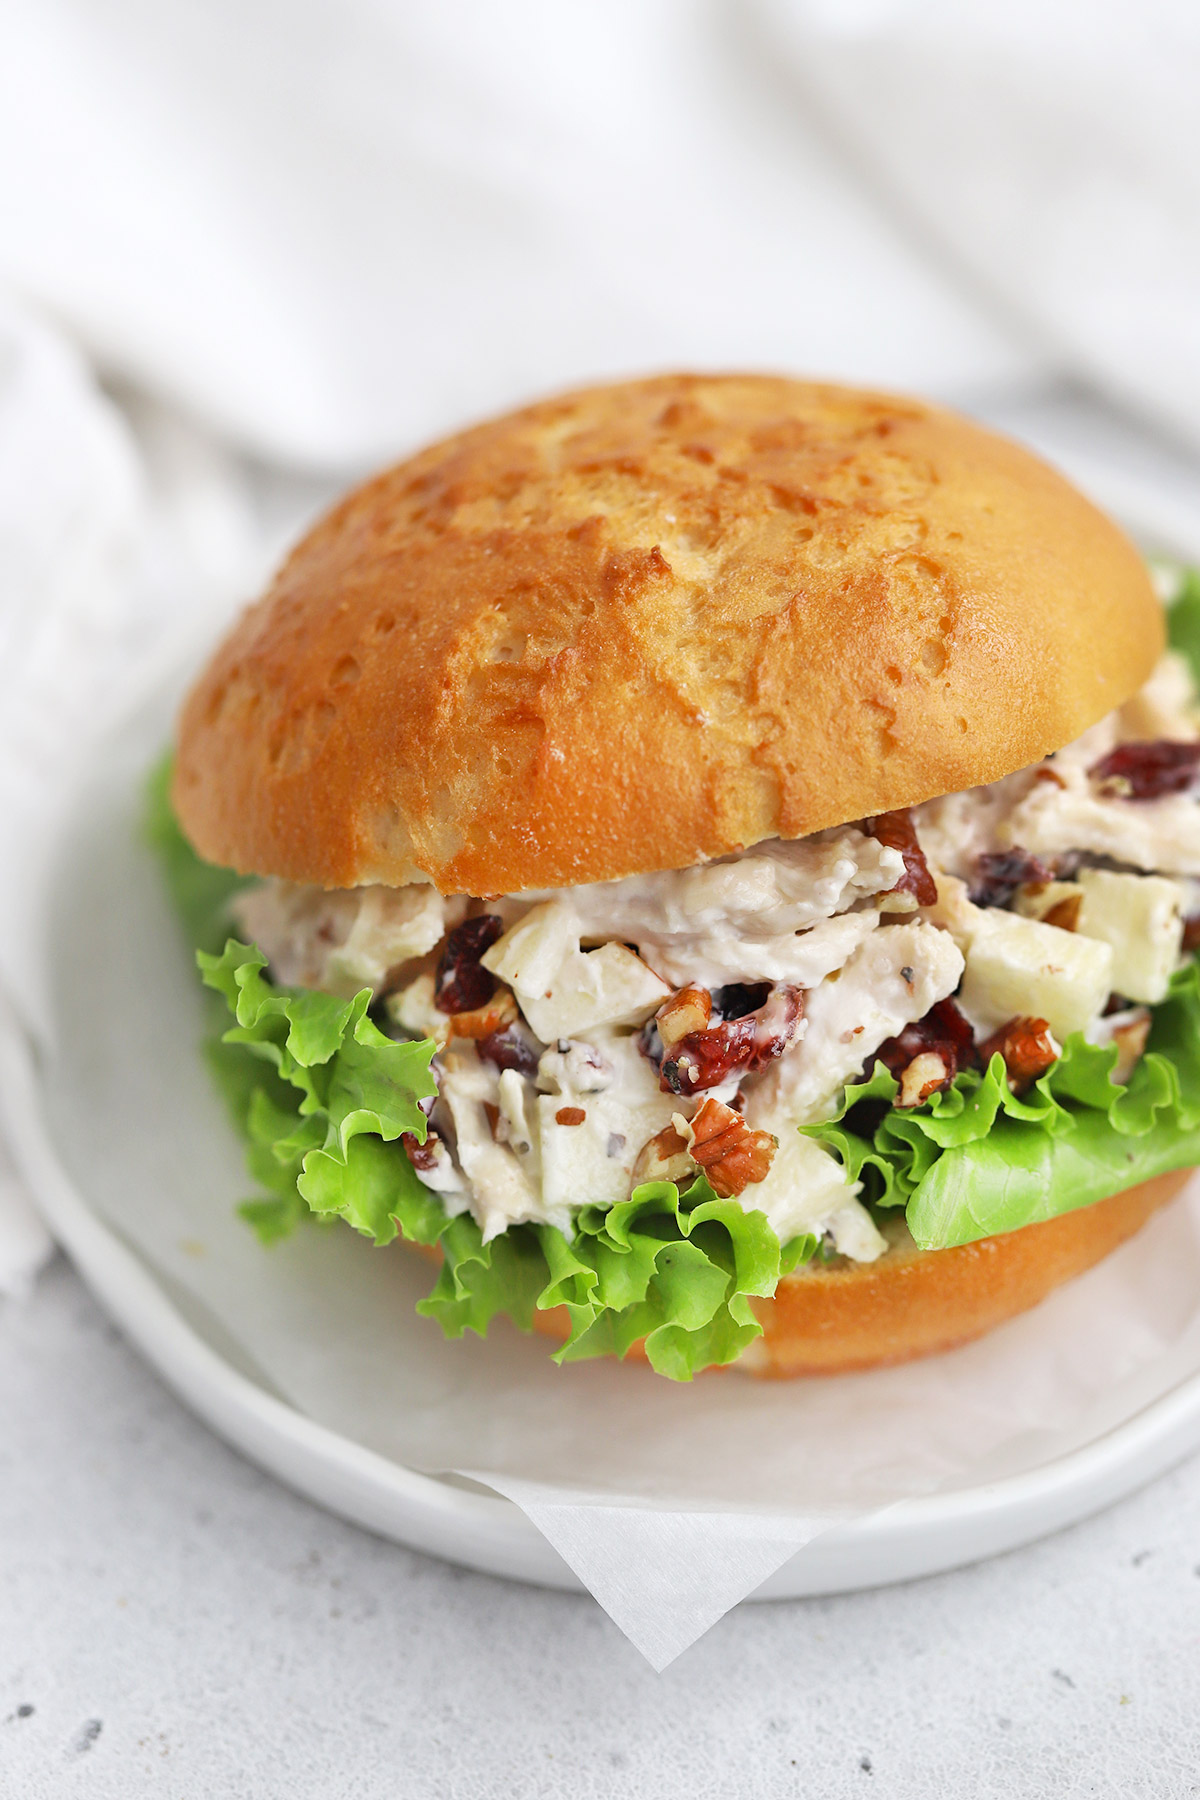 Close up view of an Apple Cranberry Chicken Salad Sandwich on a Gluten-Free Bun with Lettuce